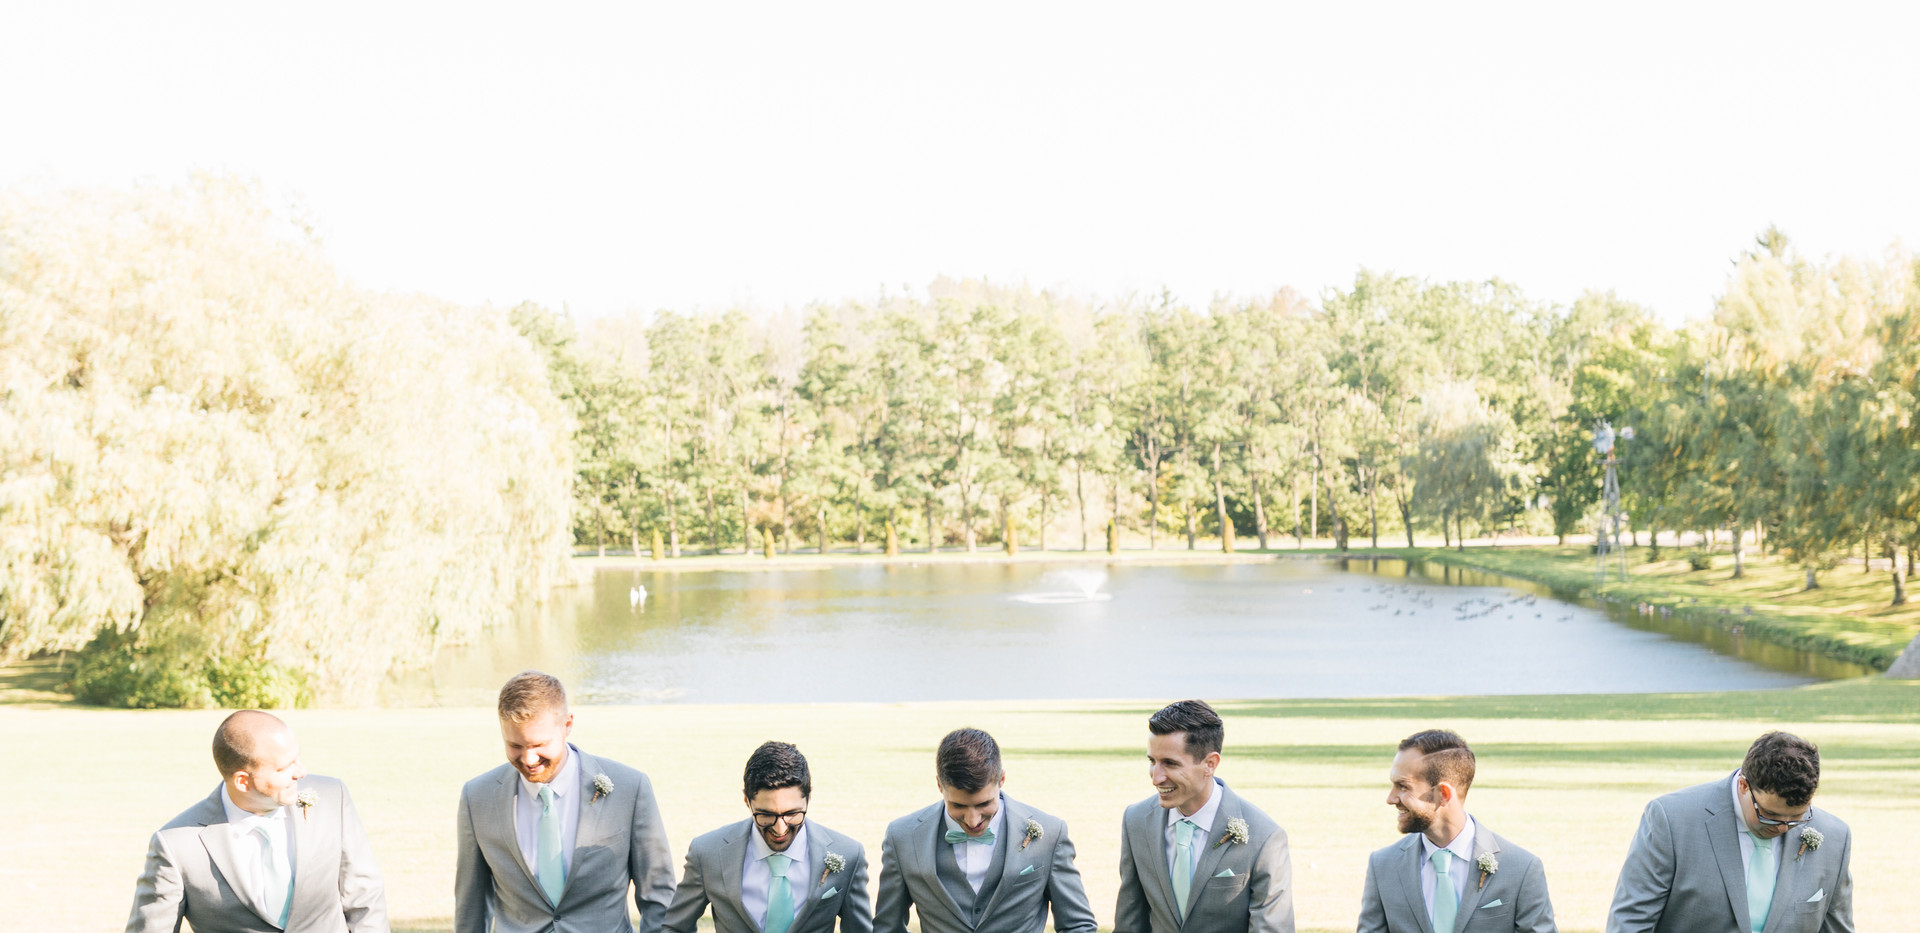 Groomsmen walking towards camera with pond in the background